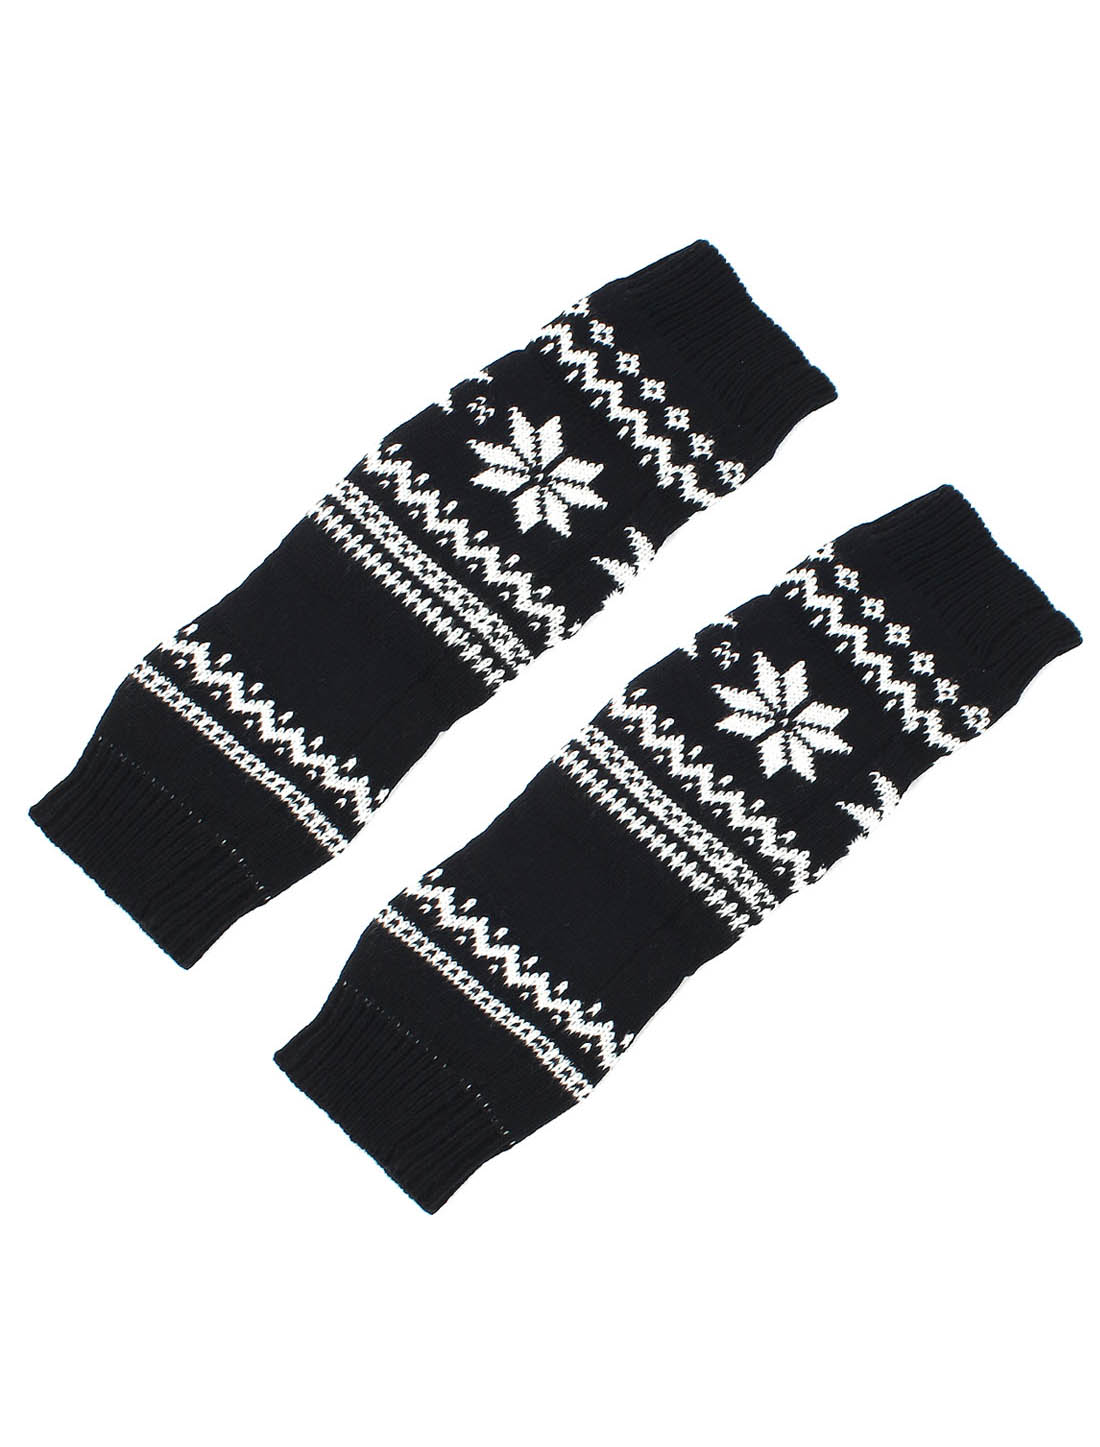 Lady Christmas Snowflake Print Winter Knitted Leg Warmers Boot Cover Socks Black